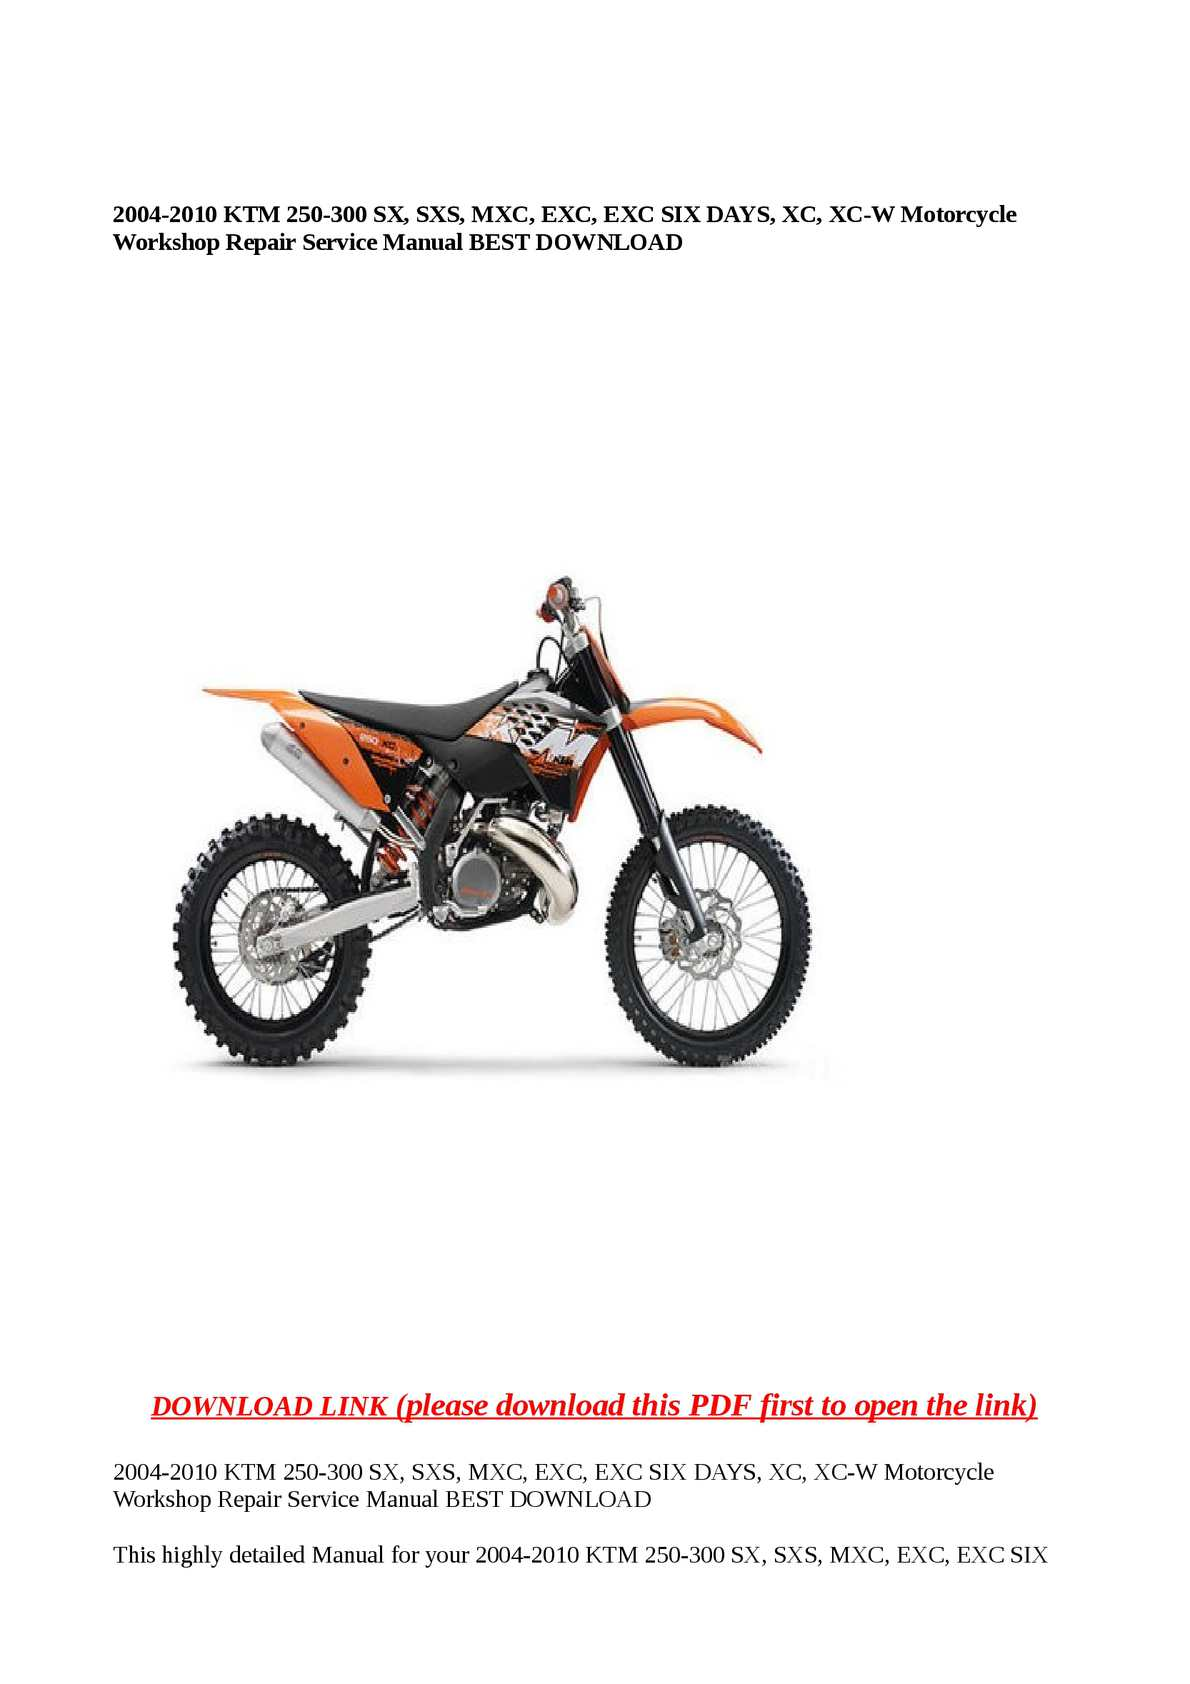 Calaméo - 2004-2010 KTM 250-300 SX, SXS, MXC, EXC, EXC SIX DAYS, XC, XC-W  Motorcycle Workshop Repair Service Manual BEST DOWNLOAD